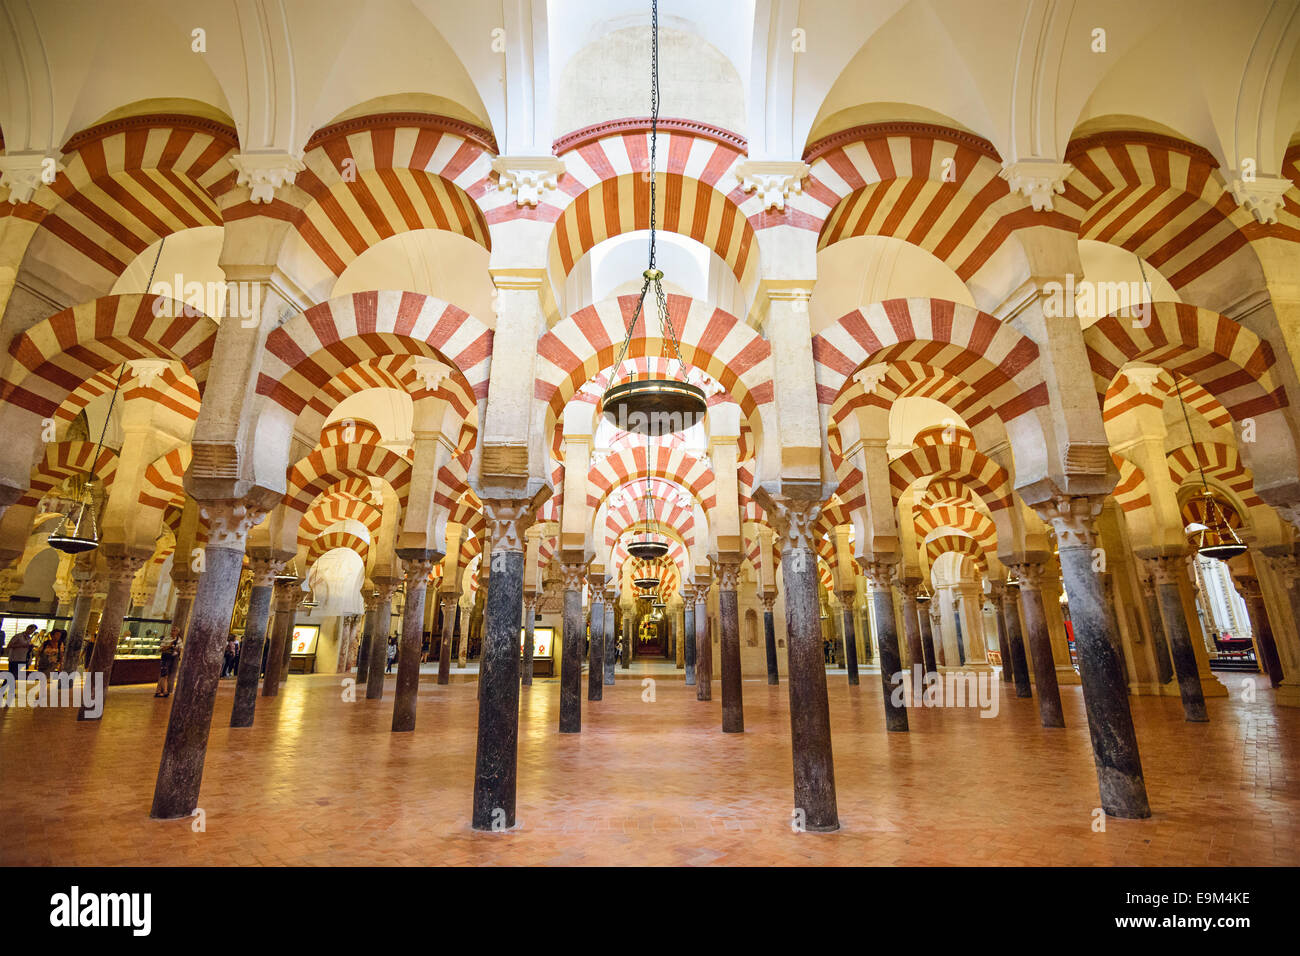 Cordoue, Espagne Mosque-Cathedral. Photo Stock